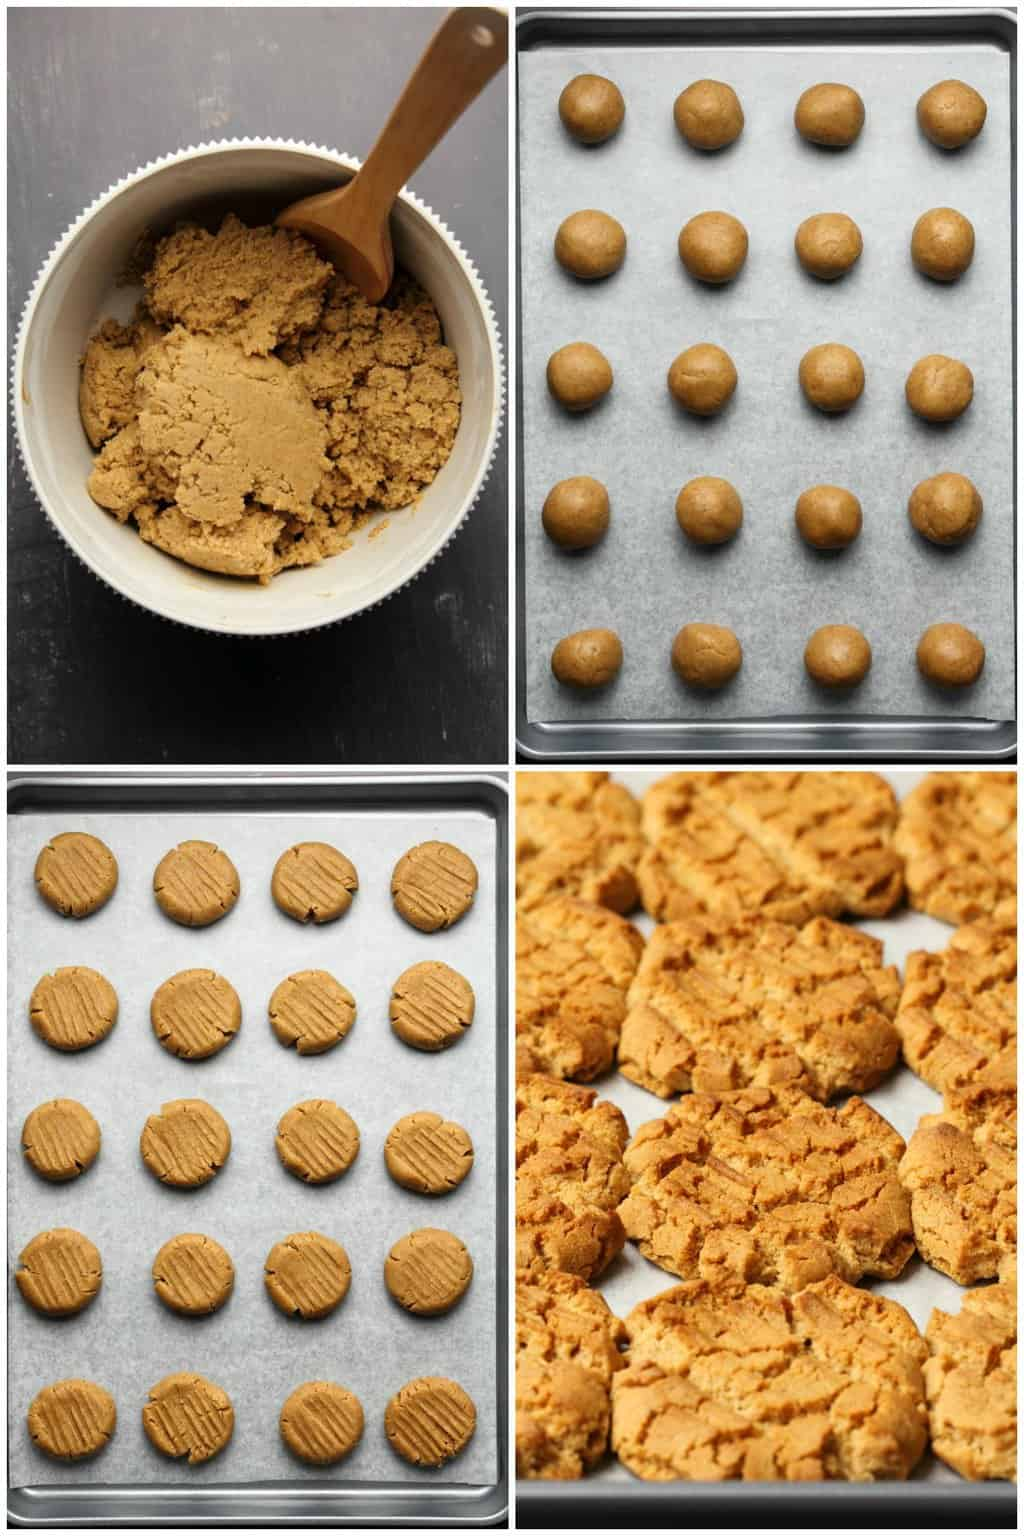 Step by step process photos of making vegan almond butter cookies.